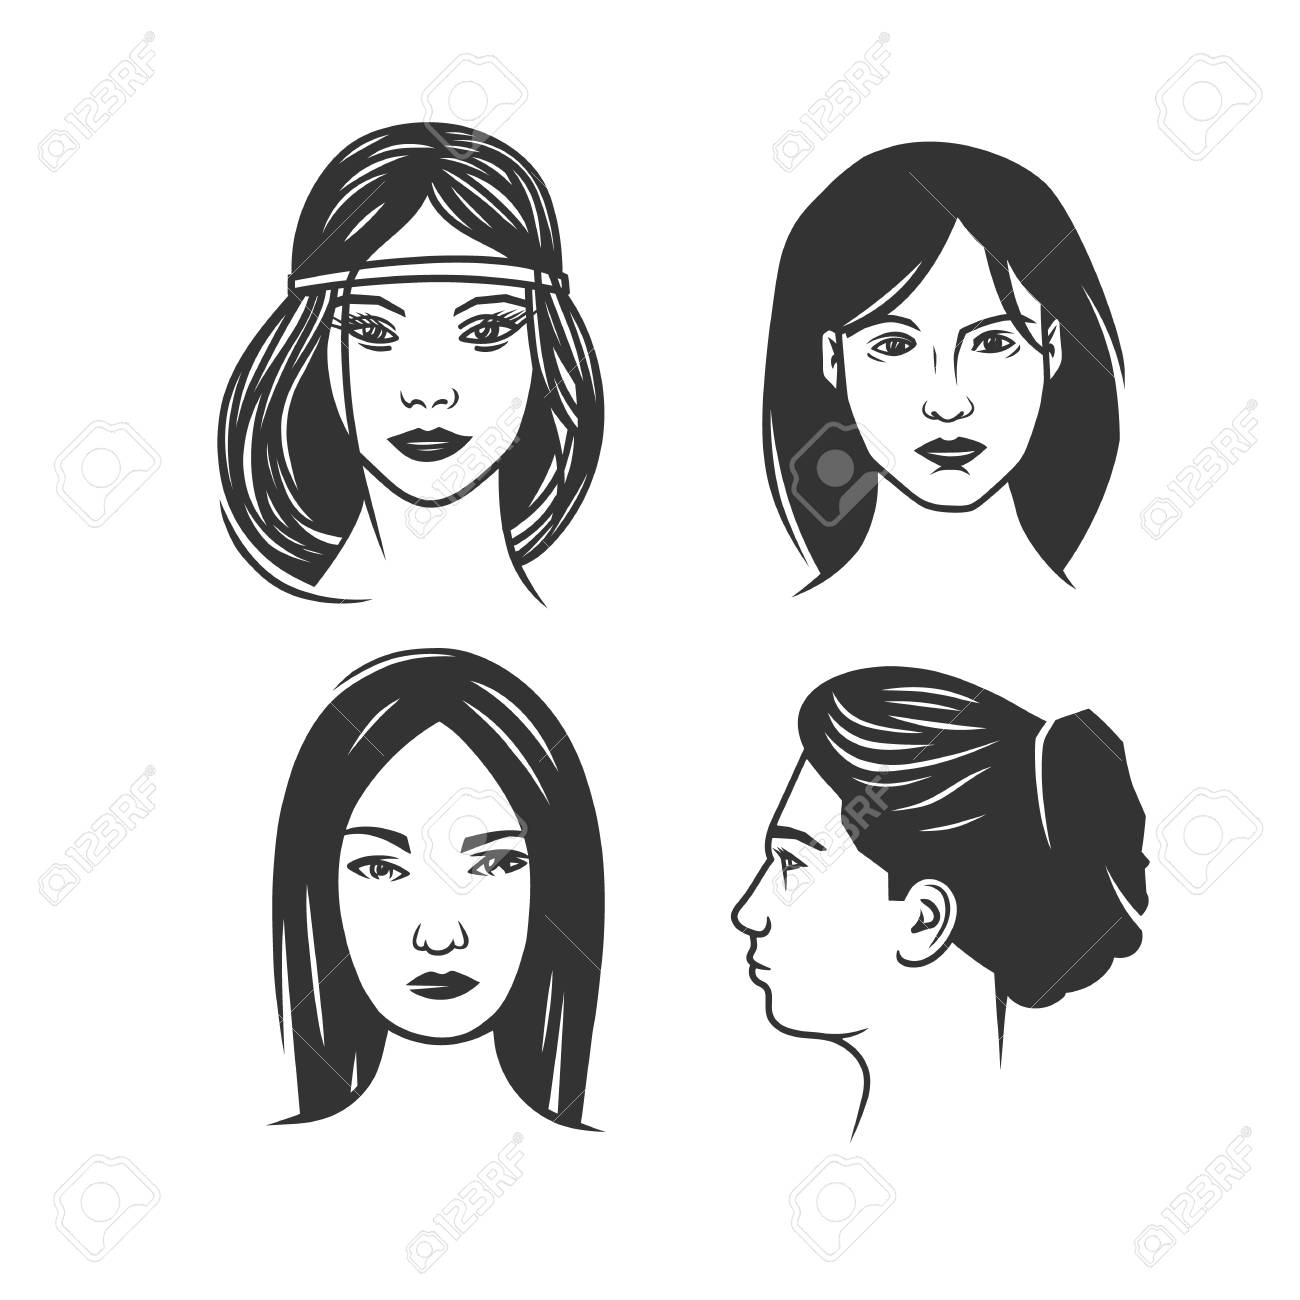 Womens faces black and white vector object stock vector 100526761